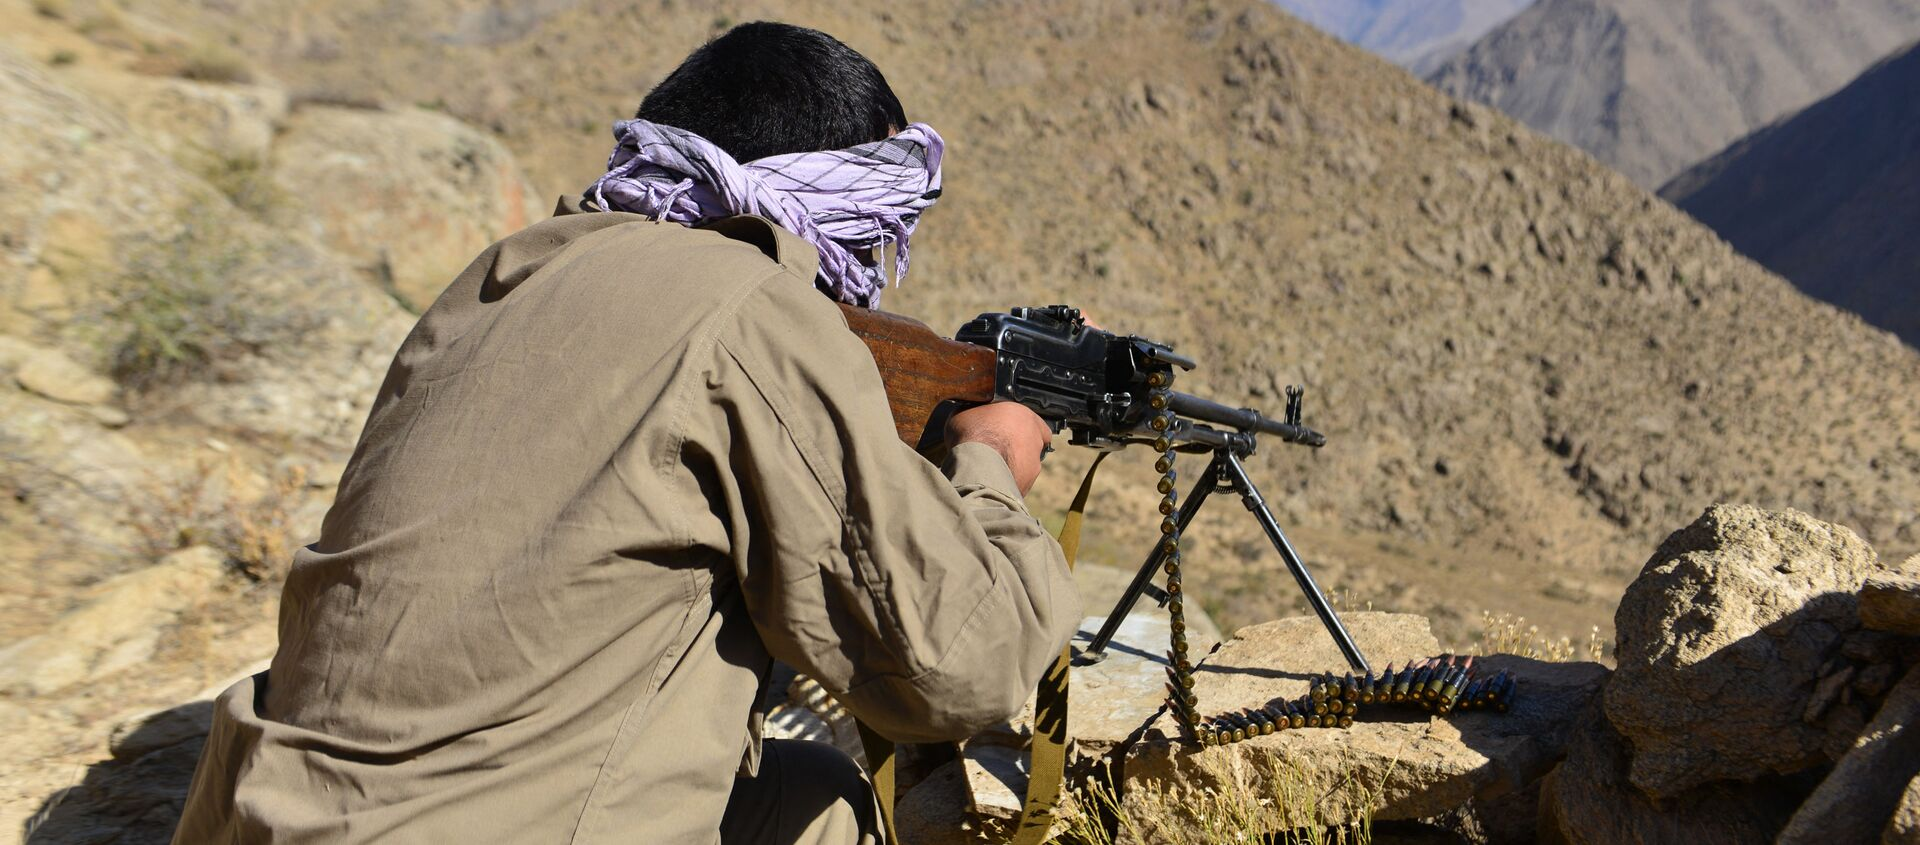 An Afghan resistance movement and anti-Taliban uprising forces personnel takes part in a military training at Malimah area of Dara district in Panjshir province on September 2, 2021 as the valley remains the last major holdout of anti-Taliban forces. - Sputnik International, 1920